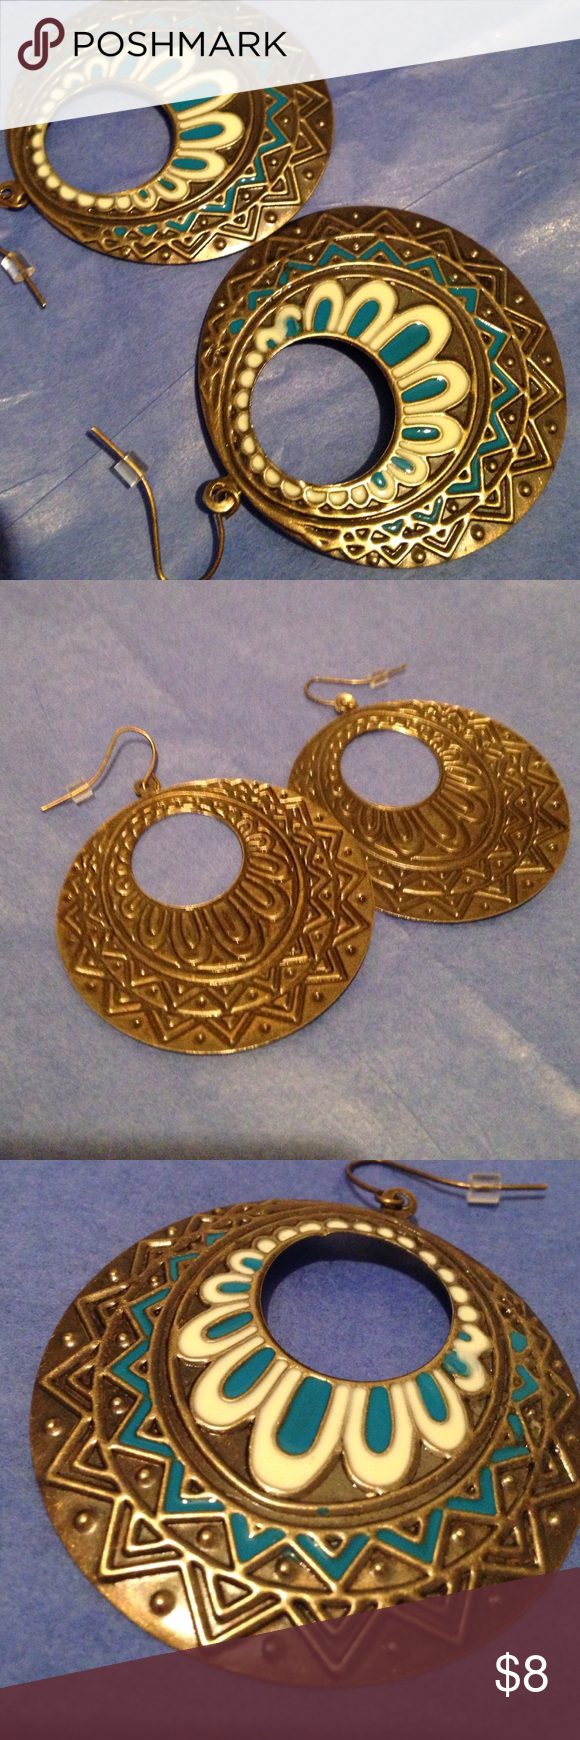 "Earrings Gold like metal. Bohemian design in whites, c golds, turquoise. 1 3/4"" across almost 2"" long, these are a nice size lightweight dangle.  Hypo-allergenic. New without tags Jewelry Earrings"